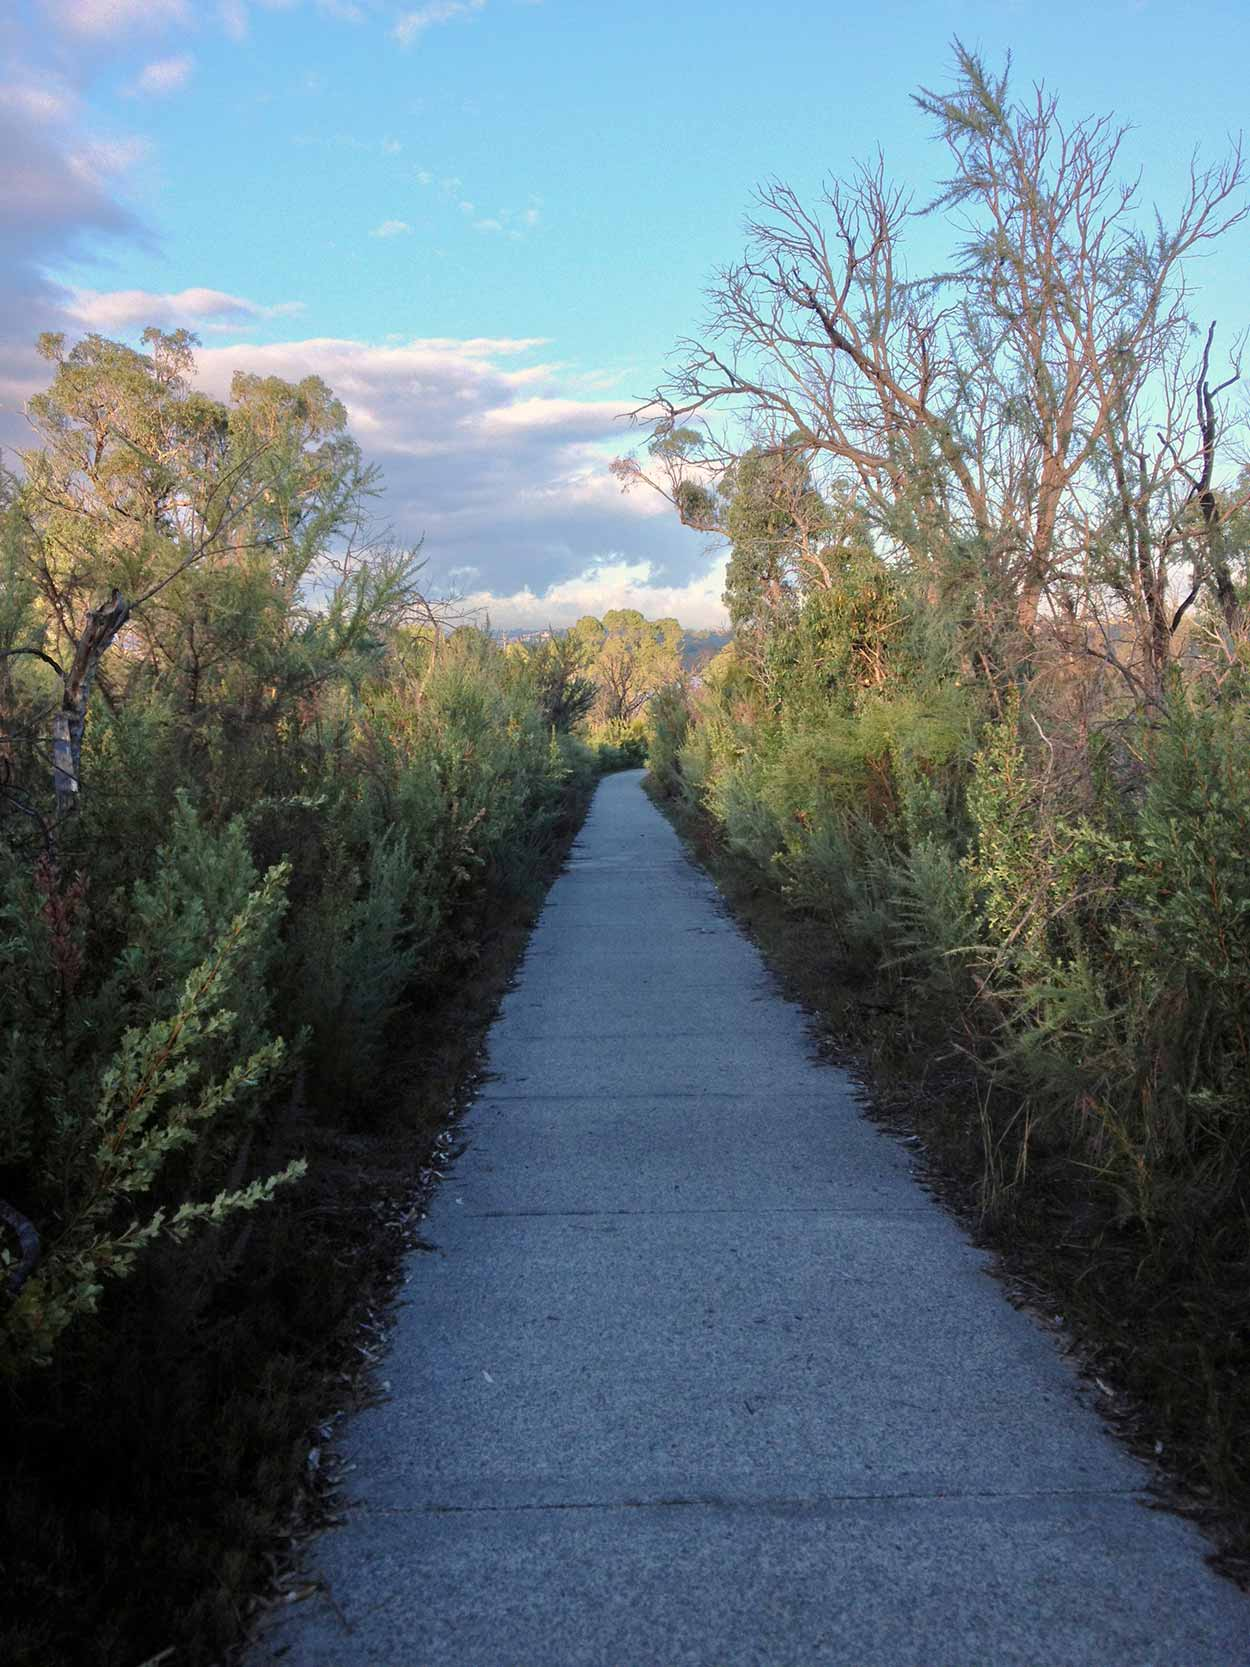 A path in the Kings Park bushland near Forrest Drive, Perth, Western Australia